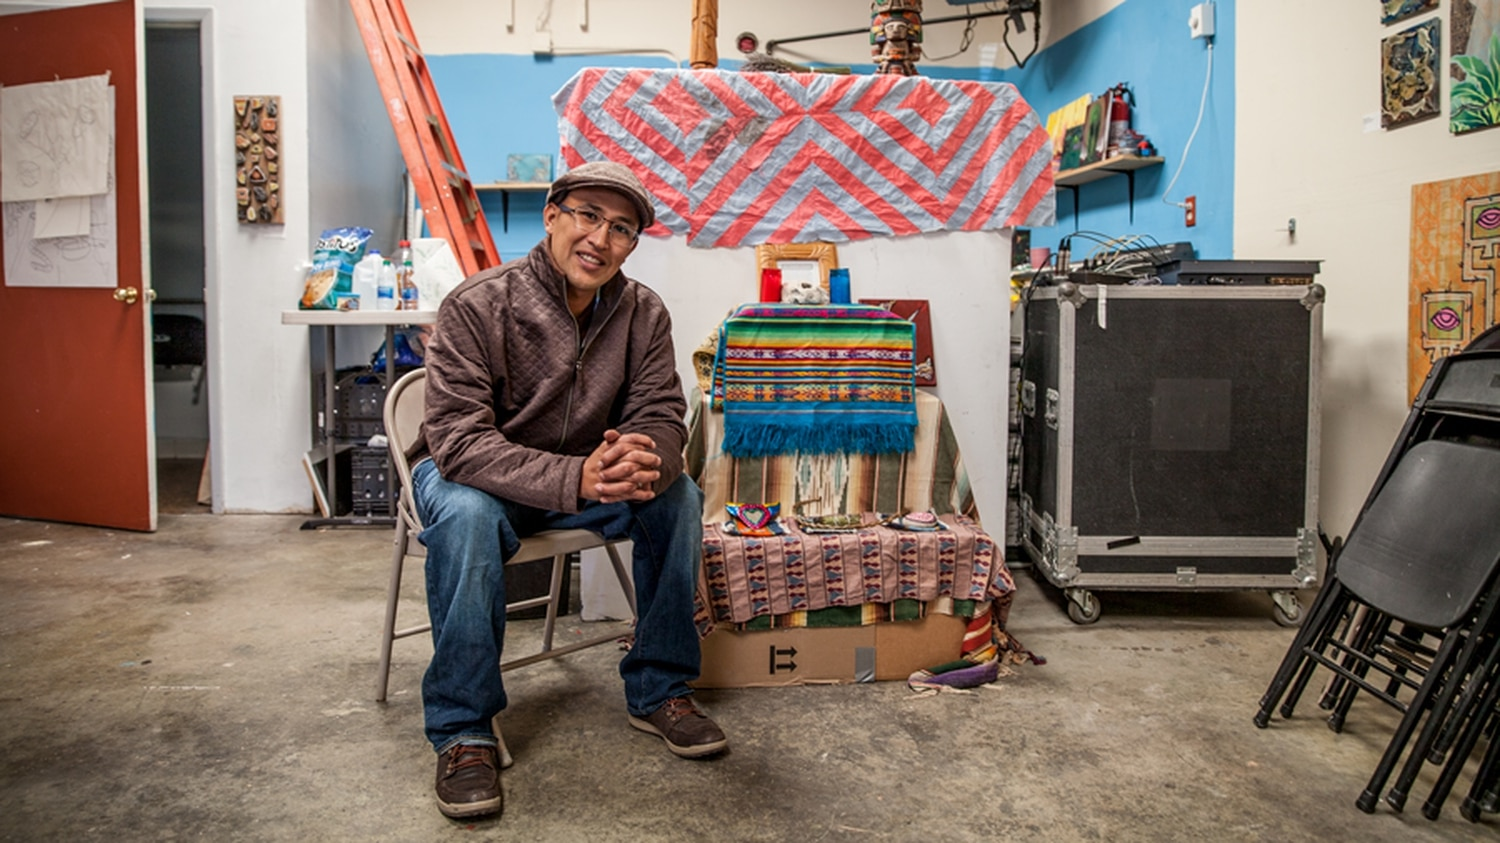 John Paul Granillo spent the entirety of his 20s in federal prison. Now he's an artist with a mind for community.